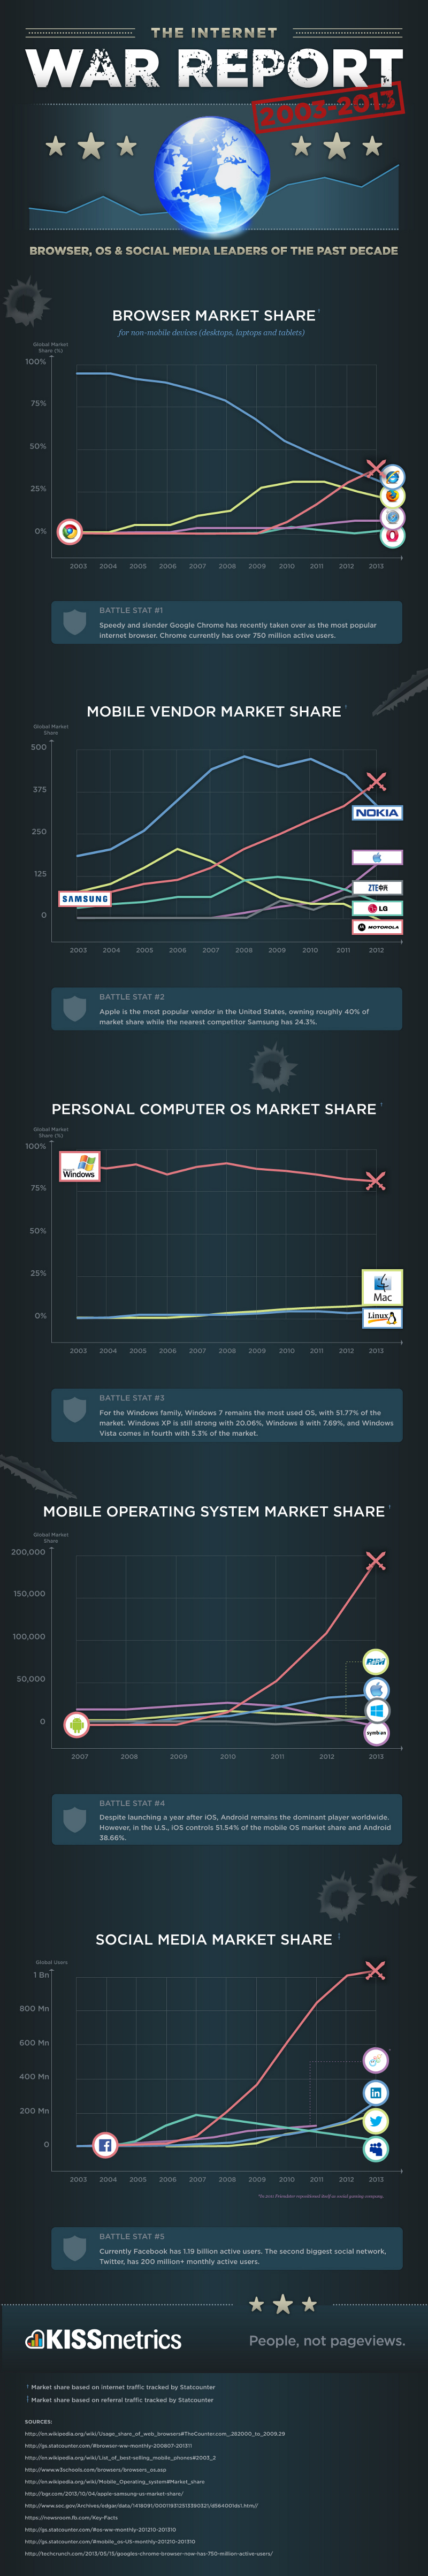 Internet-Marketshare-Report